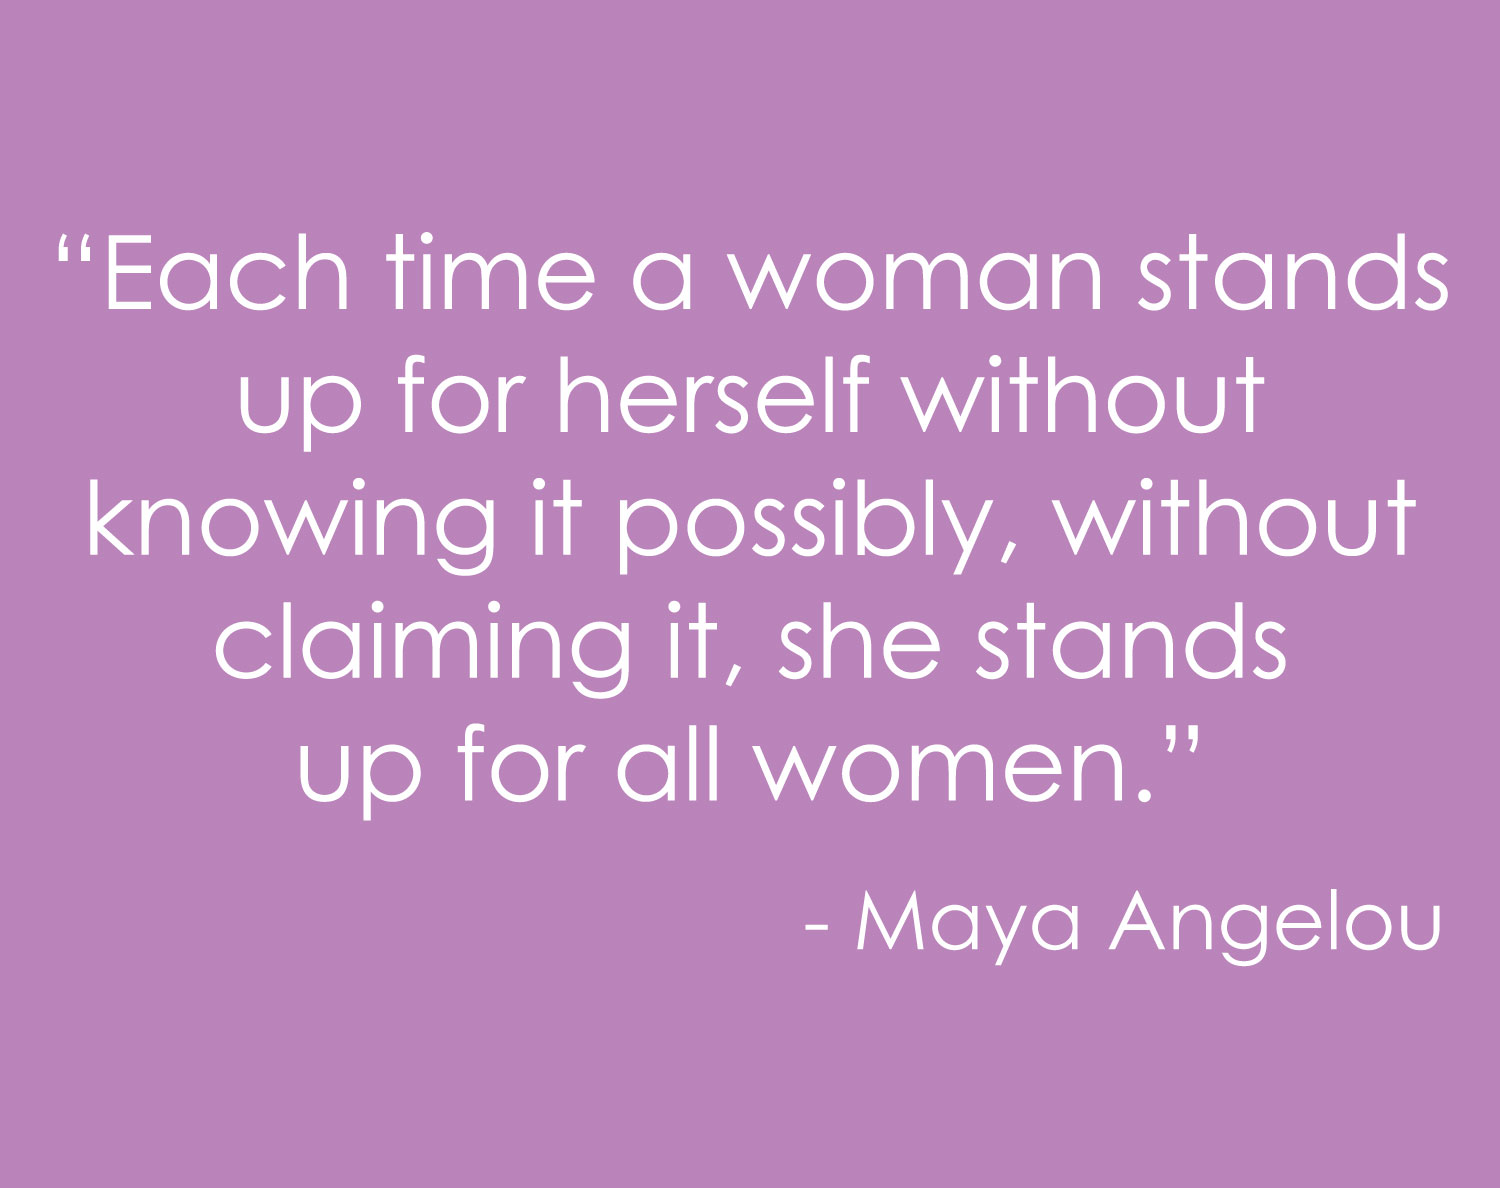 """Each time a woman stands up for herself without knowing it possibly, without claiming it, she stands up for all women."" — Maya Angelou"